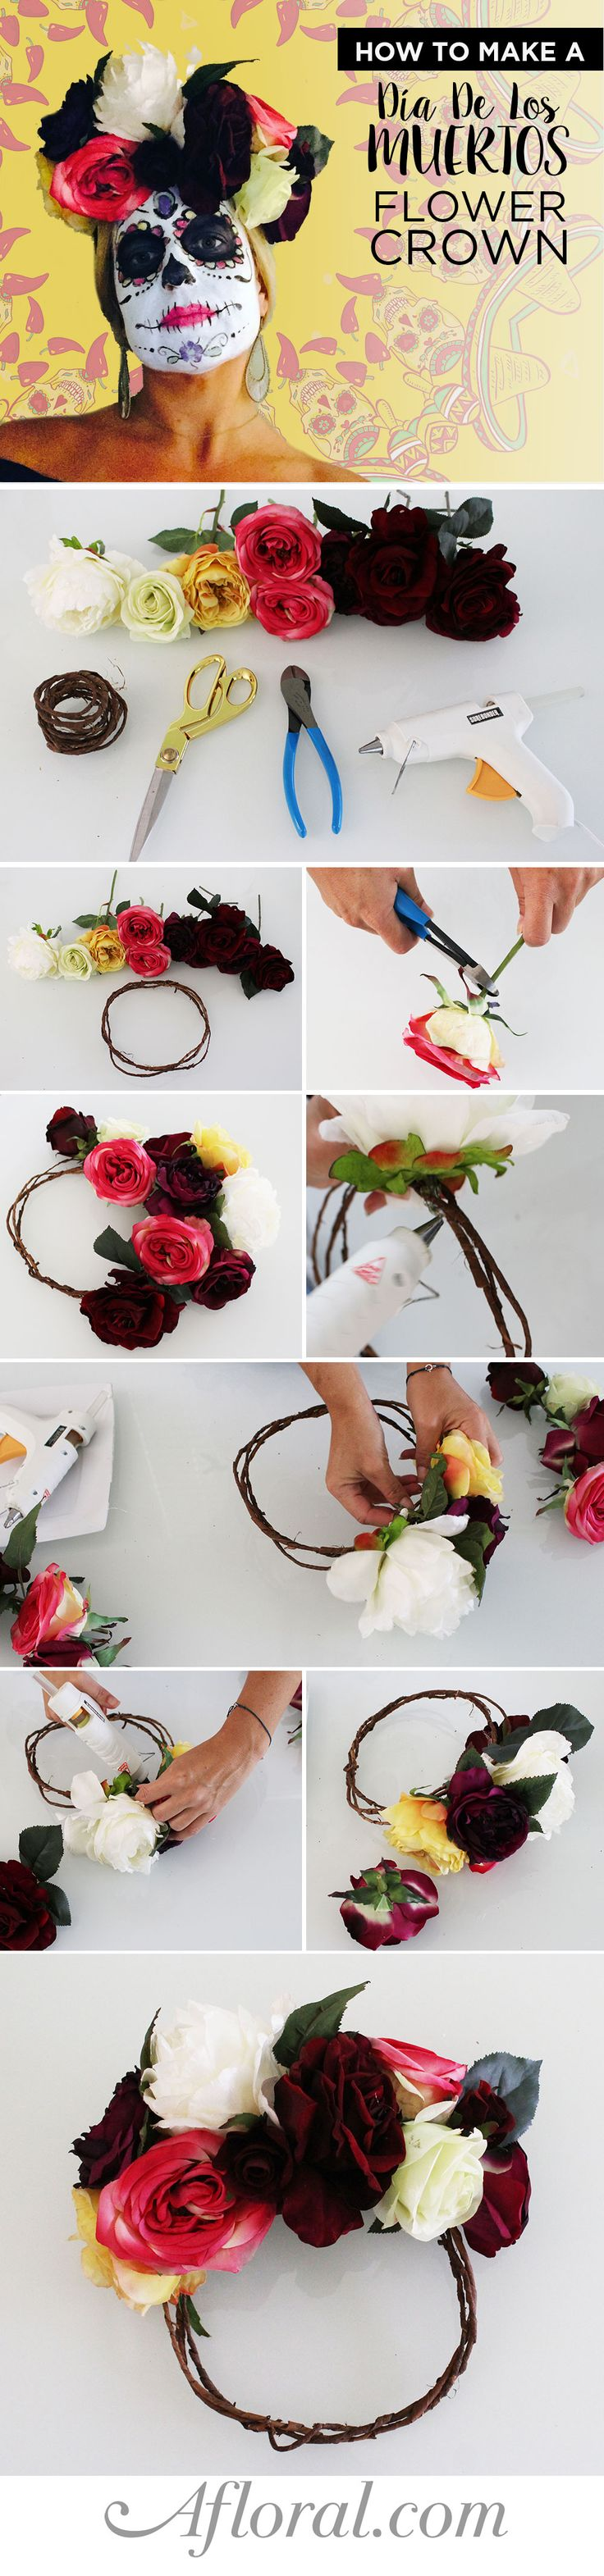 Dia De Los Muertos Flower Crown. Make your own floral crown for the Day of The Dead. Wow your friends with your Halloween costume this year with your one of a kind silk flower crown. So easy and affordable, you will want to wear it all the time!